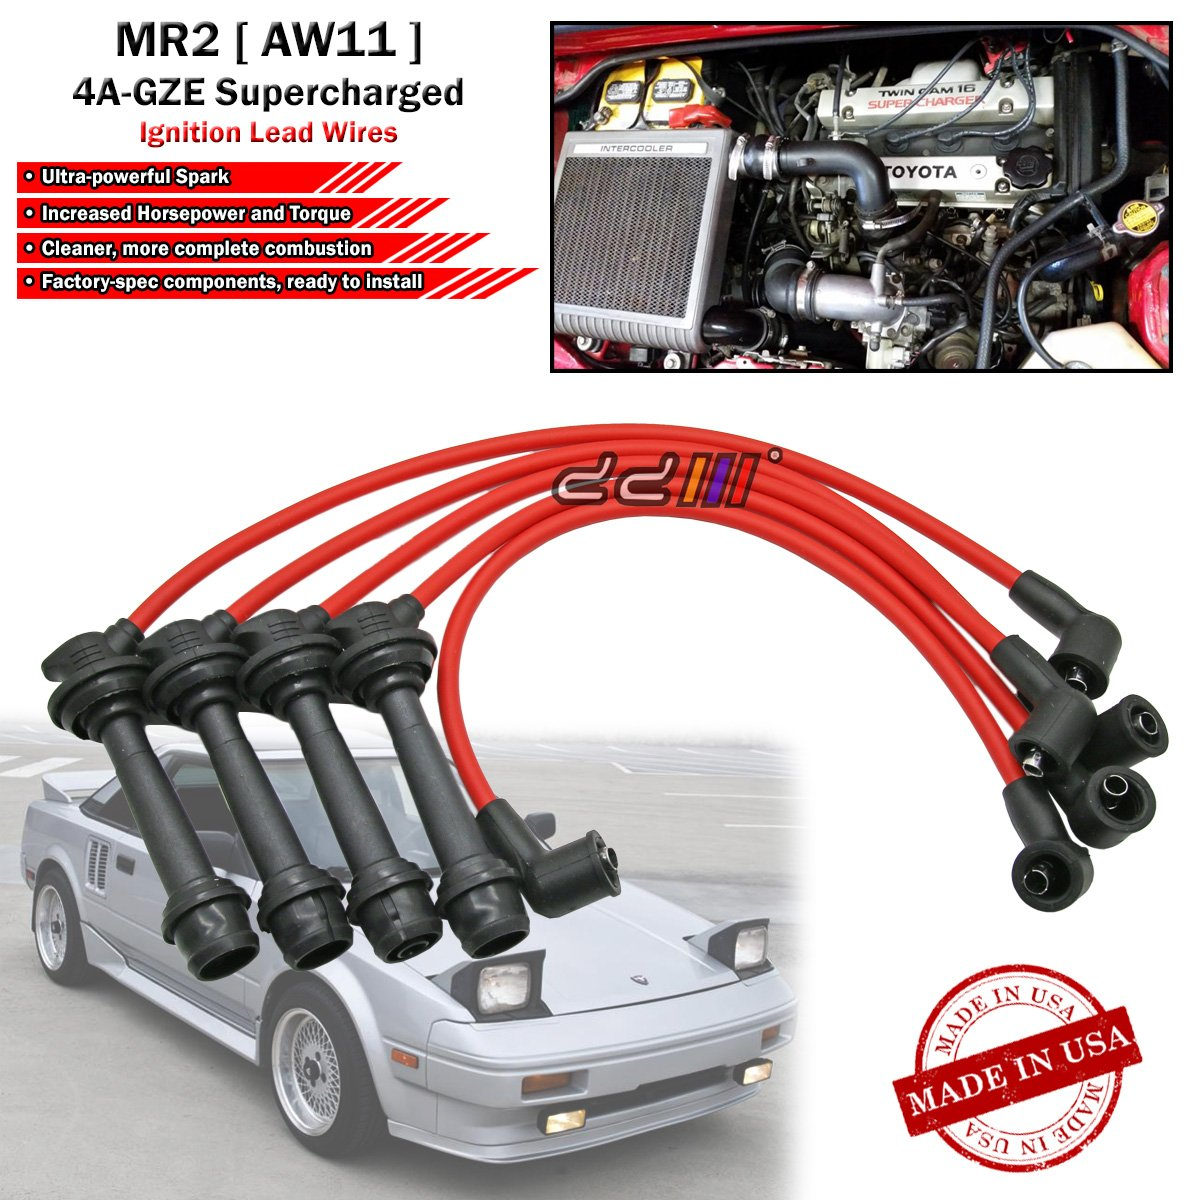 Amazon.com: SUSTEC 8mm Spark Plug Cable Ignition Wire Set For Toyota MR2  AW11 1986-89 4A-GZE Supercharged: Automotive